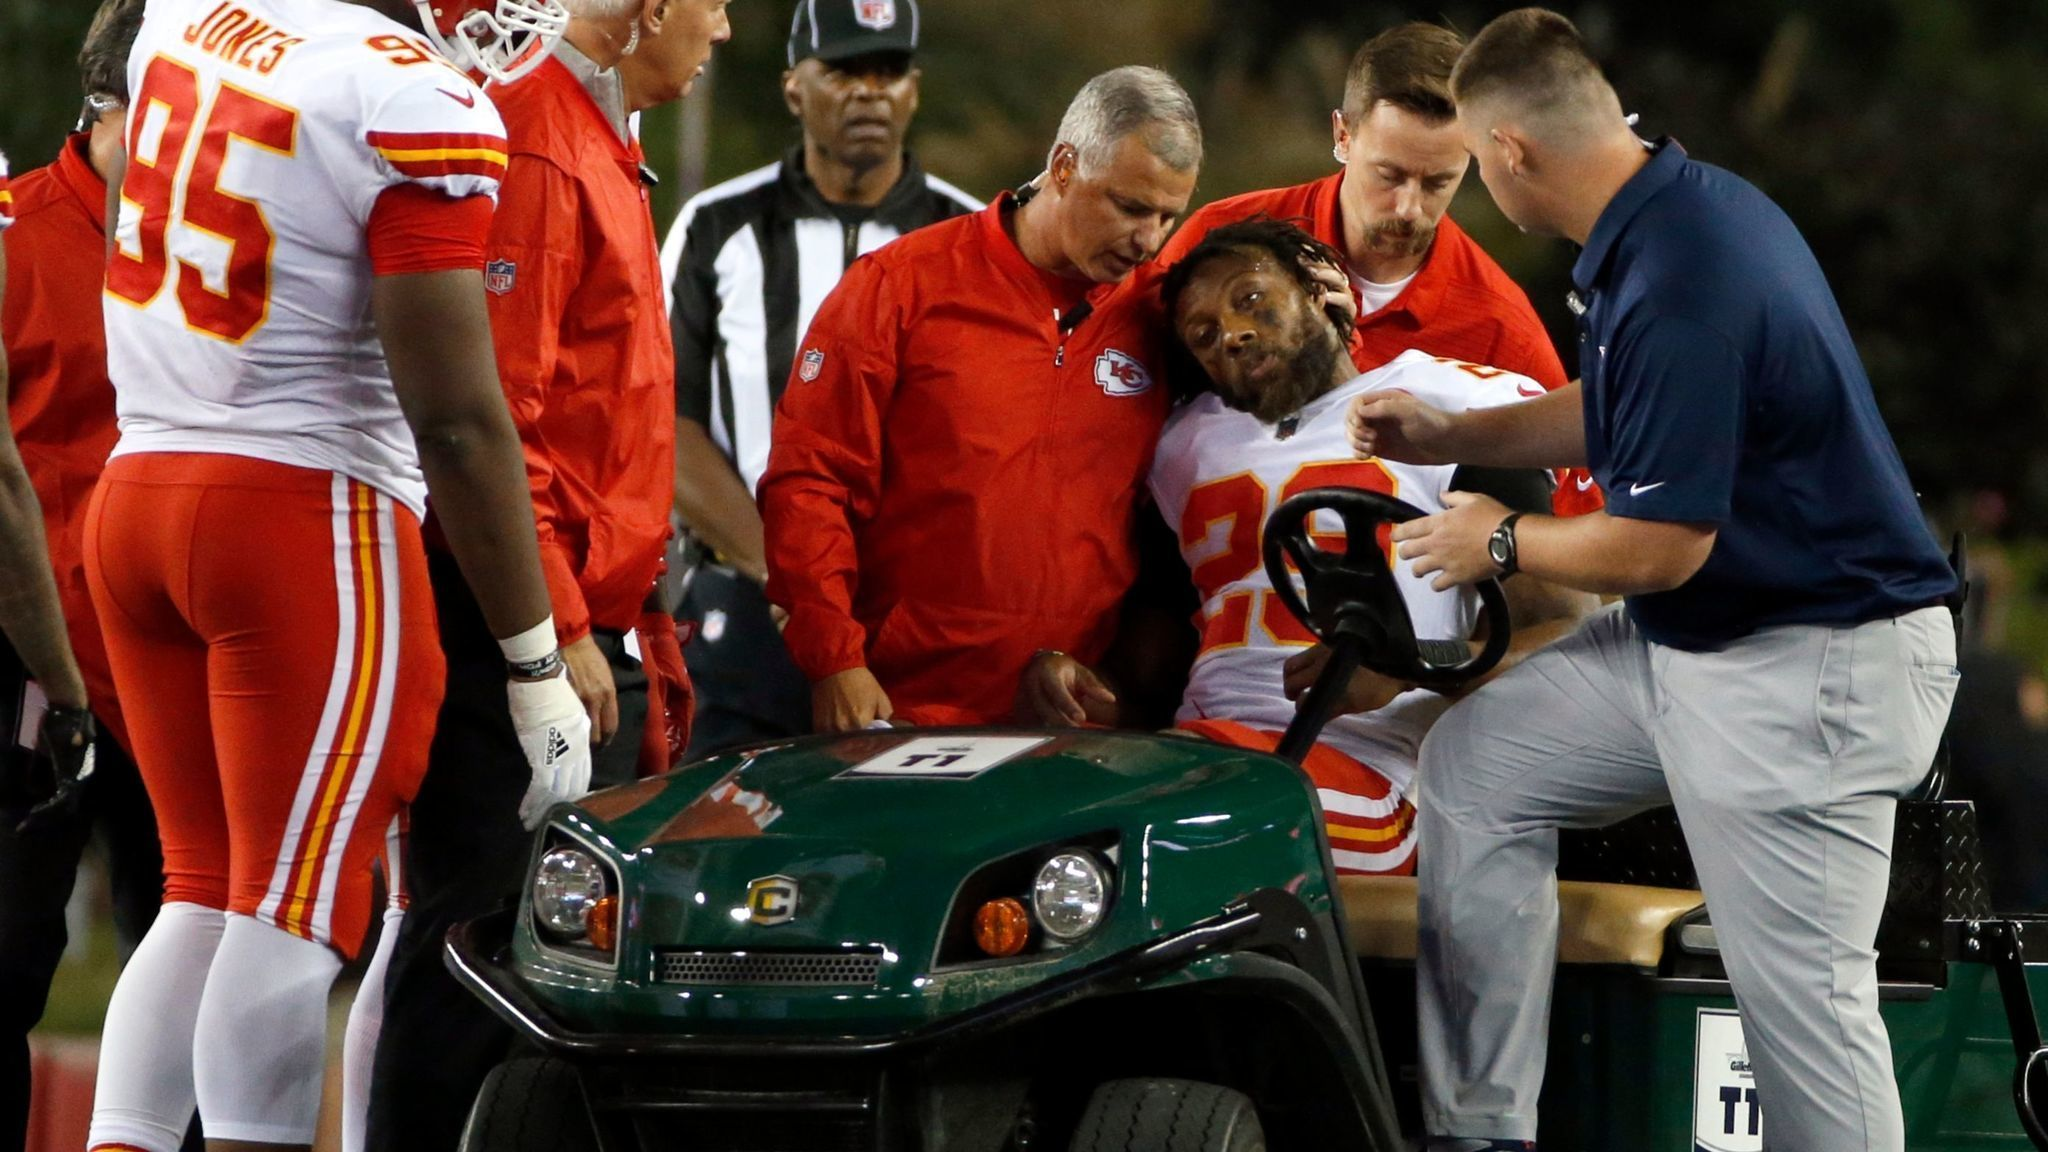 Eric Berry done for season prognosis good for full recovery by